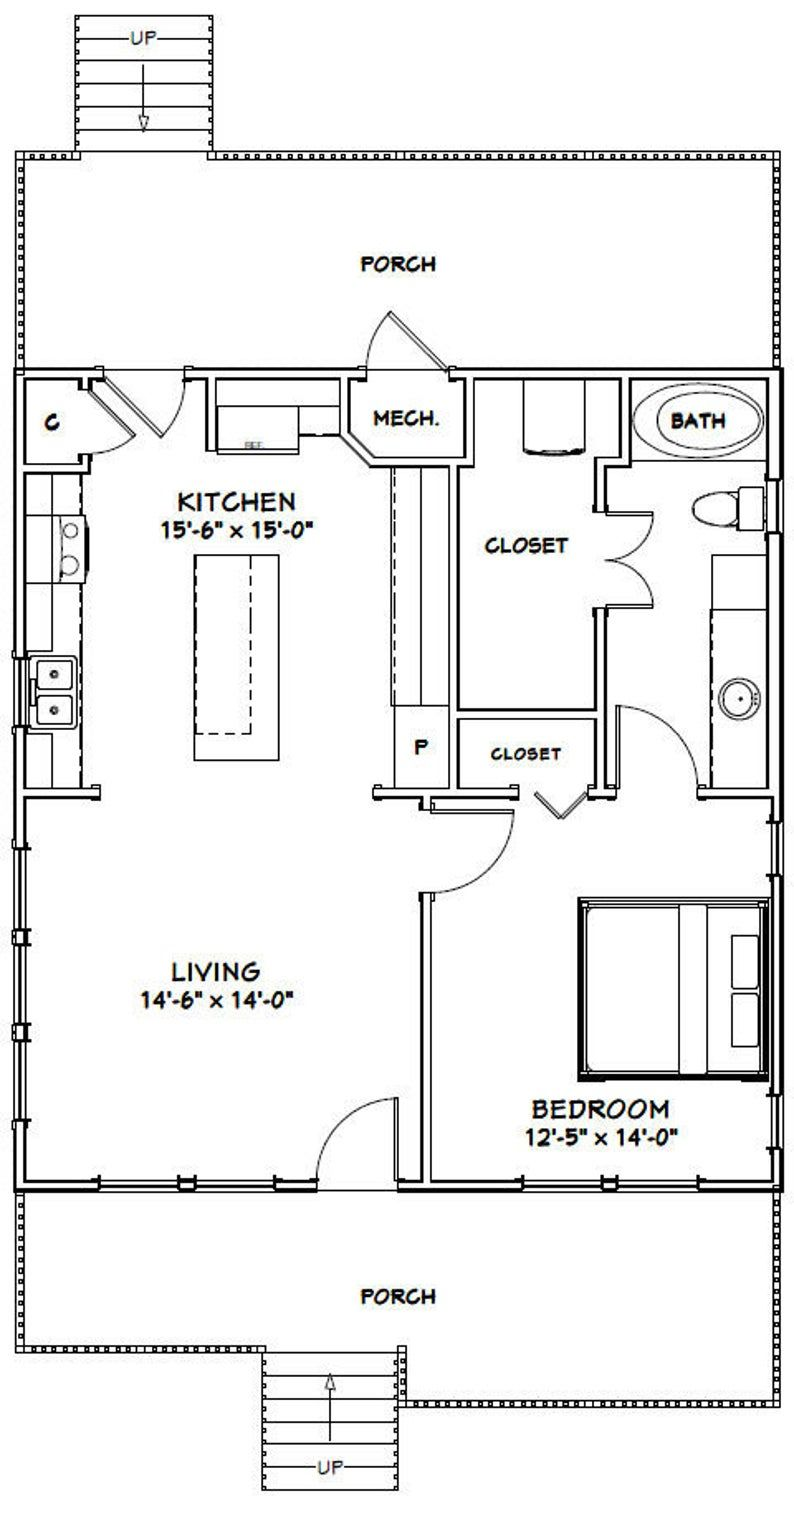 28x30 House 1 Bedroom 1 Bath 840 Sq Ft Pdf Floor Plan Etsy In 2021 Tiny House Floor Plans Small House Floor Plans Tiny House Plans